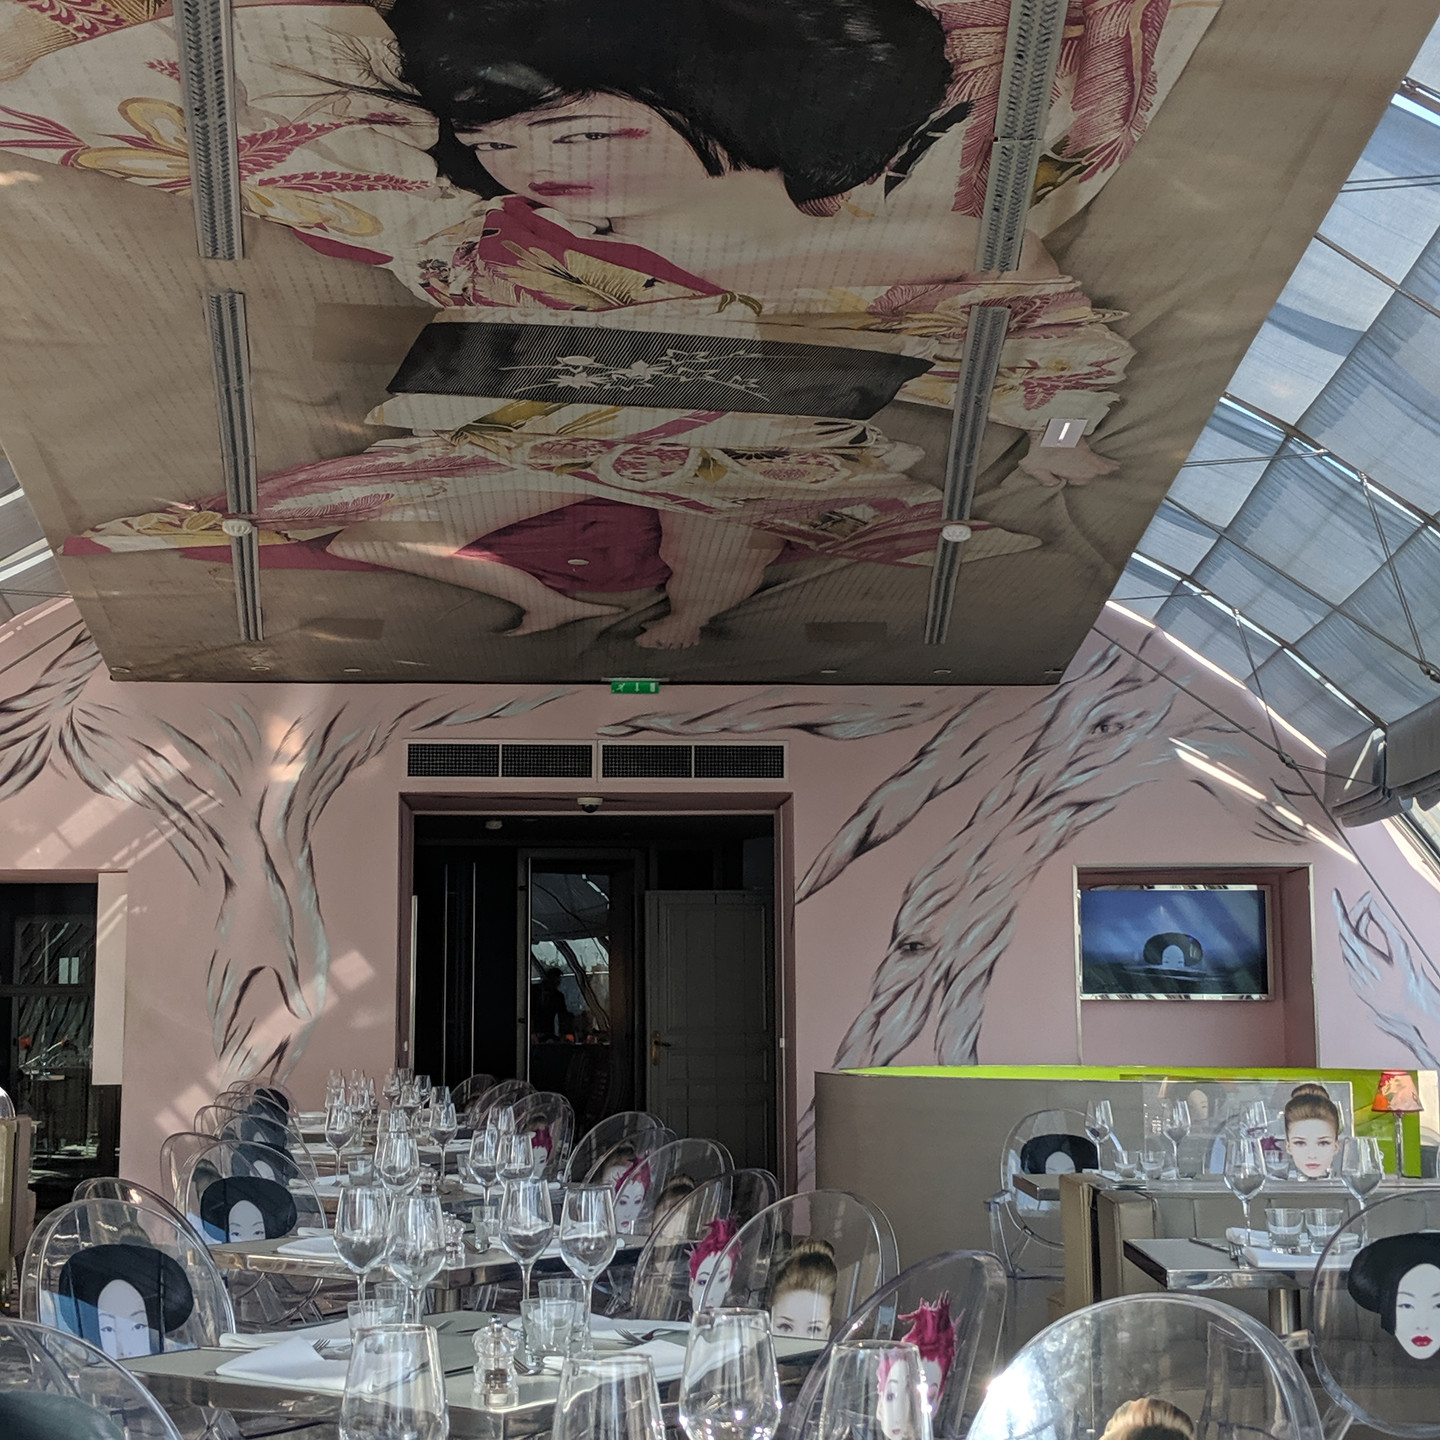 Kong Restaurant in Paris featuring Glass Barrel Ceiling and Lucite Chairs with Faces Printed on The Backs